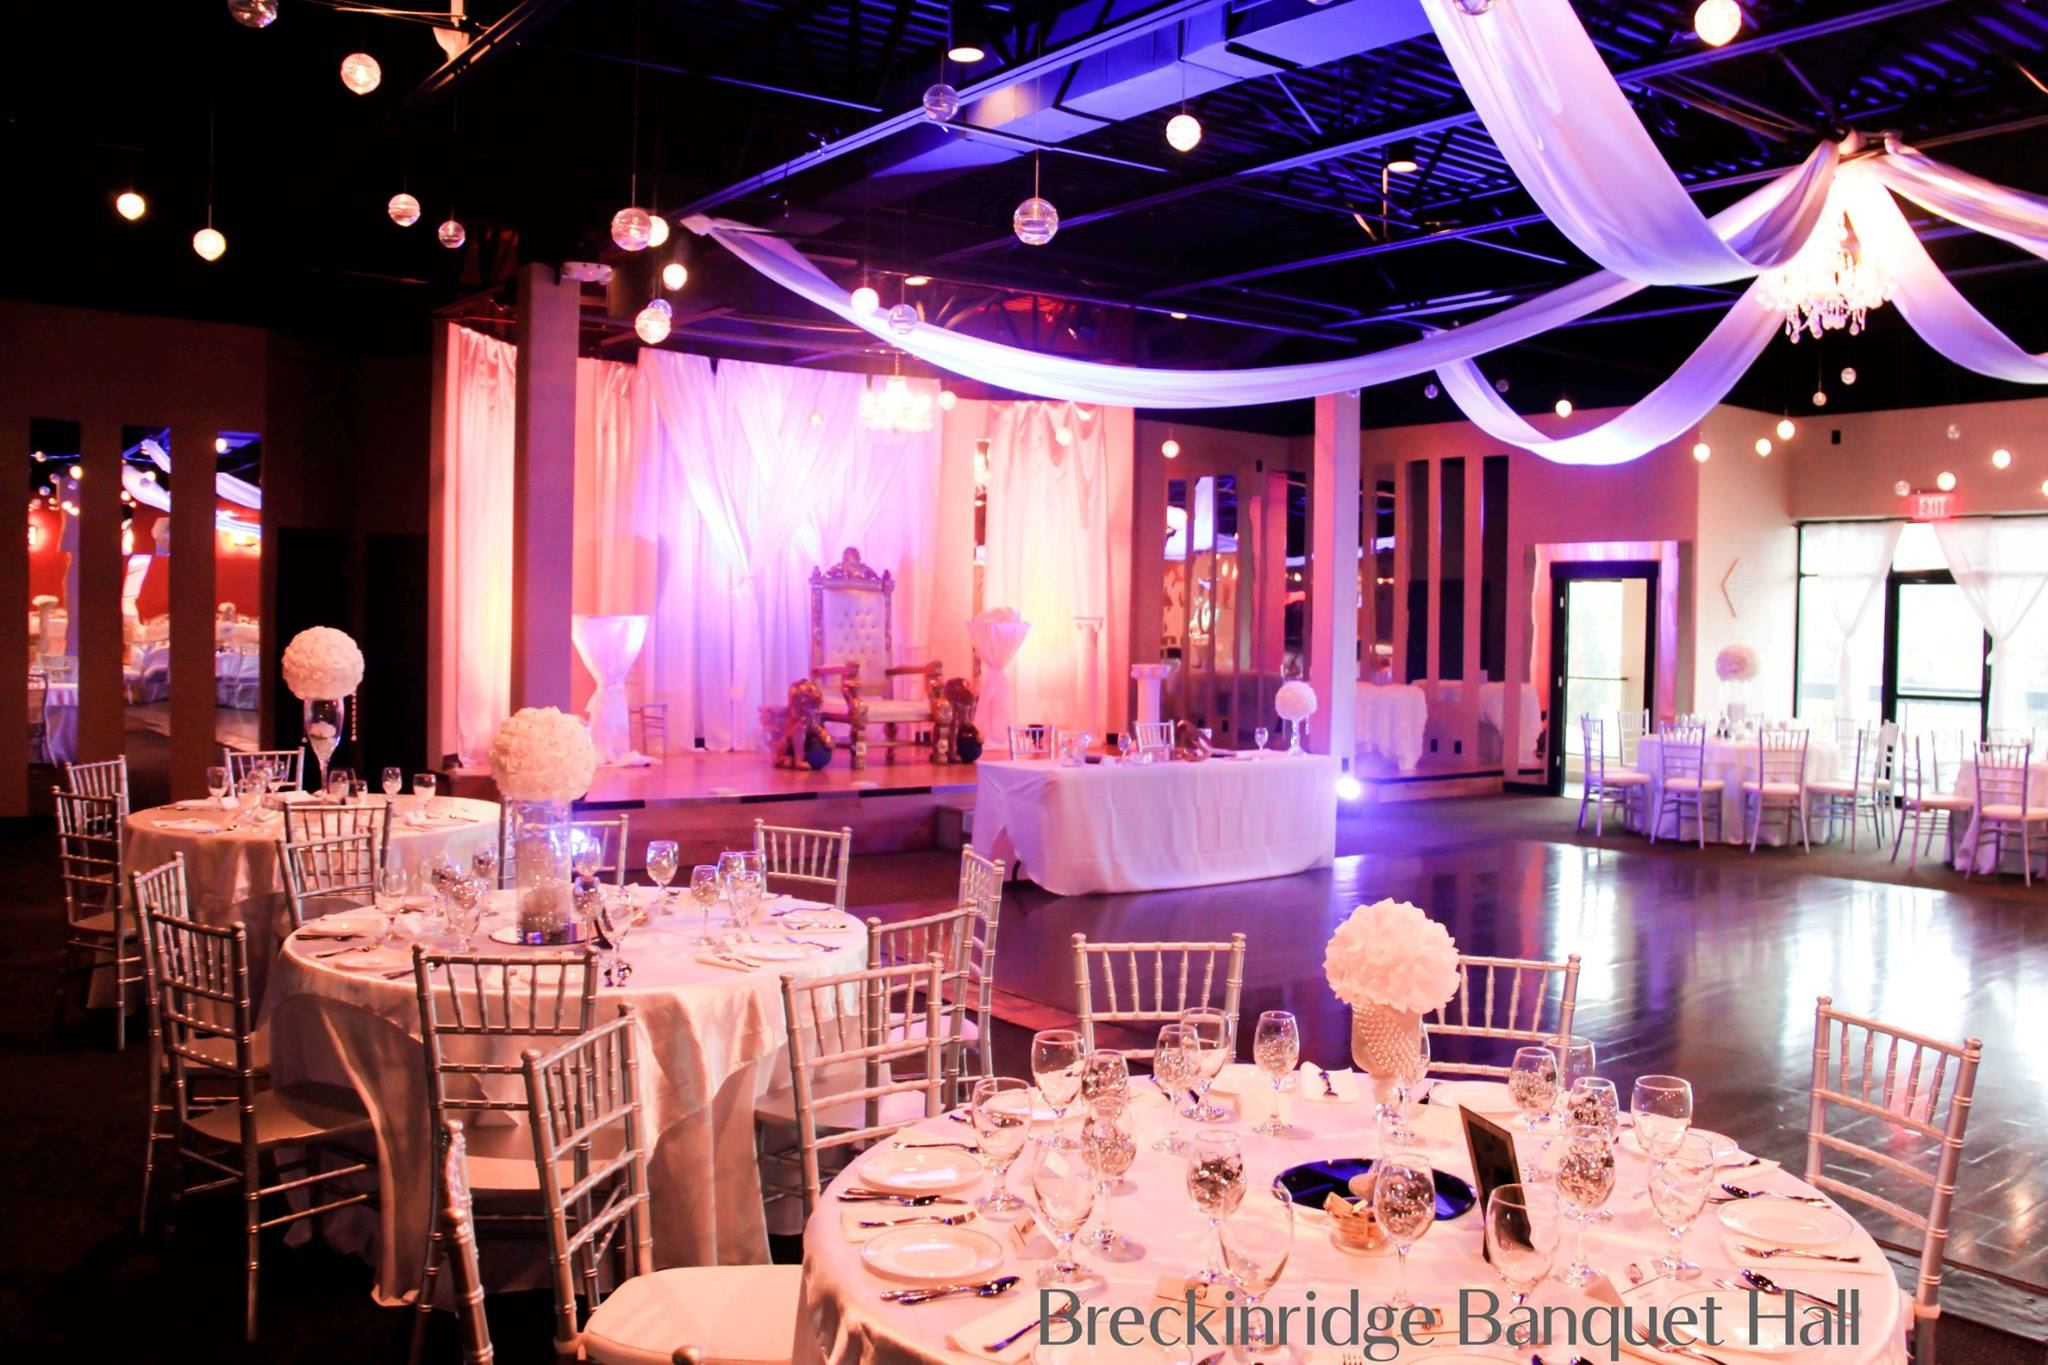 Breckenridge Banquet Hall - 4